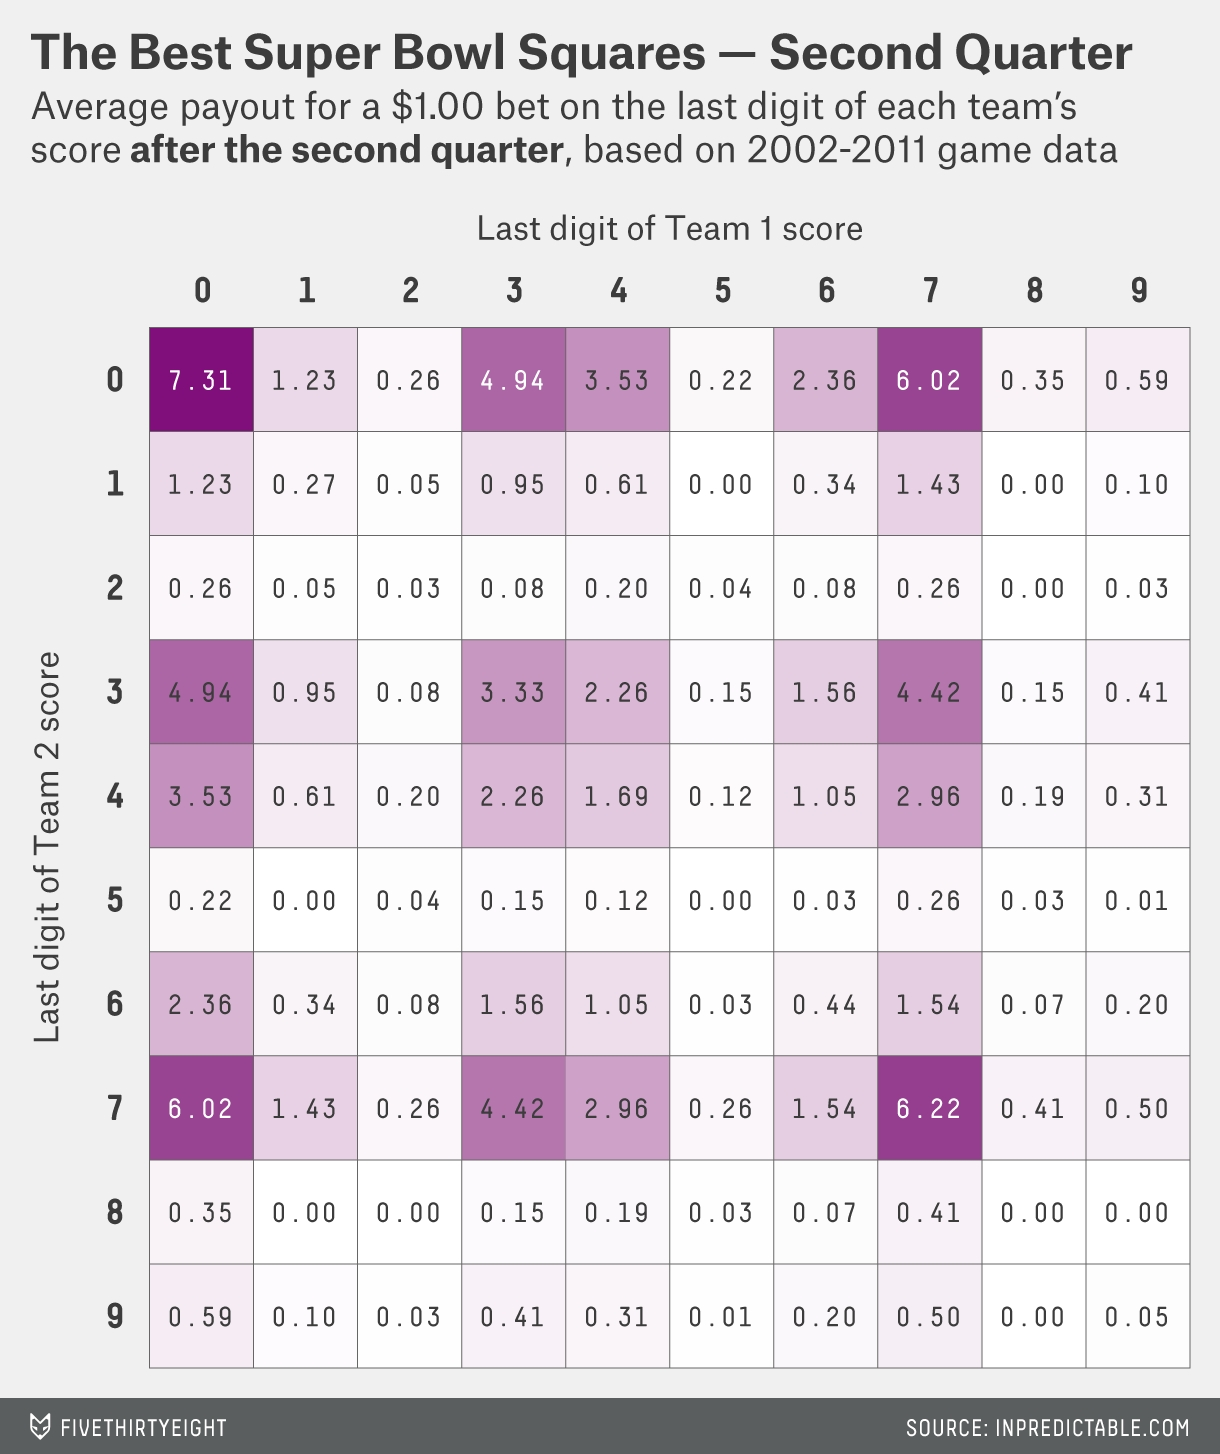 How Much Money You're Going To Win Playing Super Bowl regarding Super Bowl Squares Heat Map